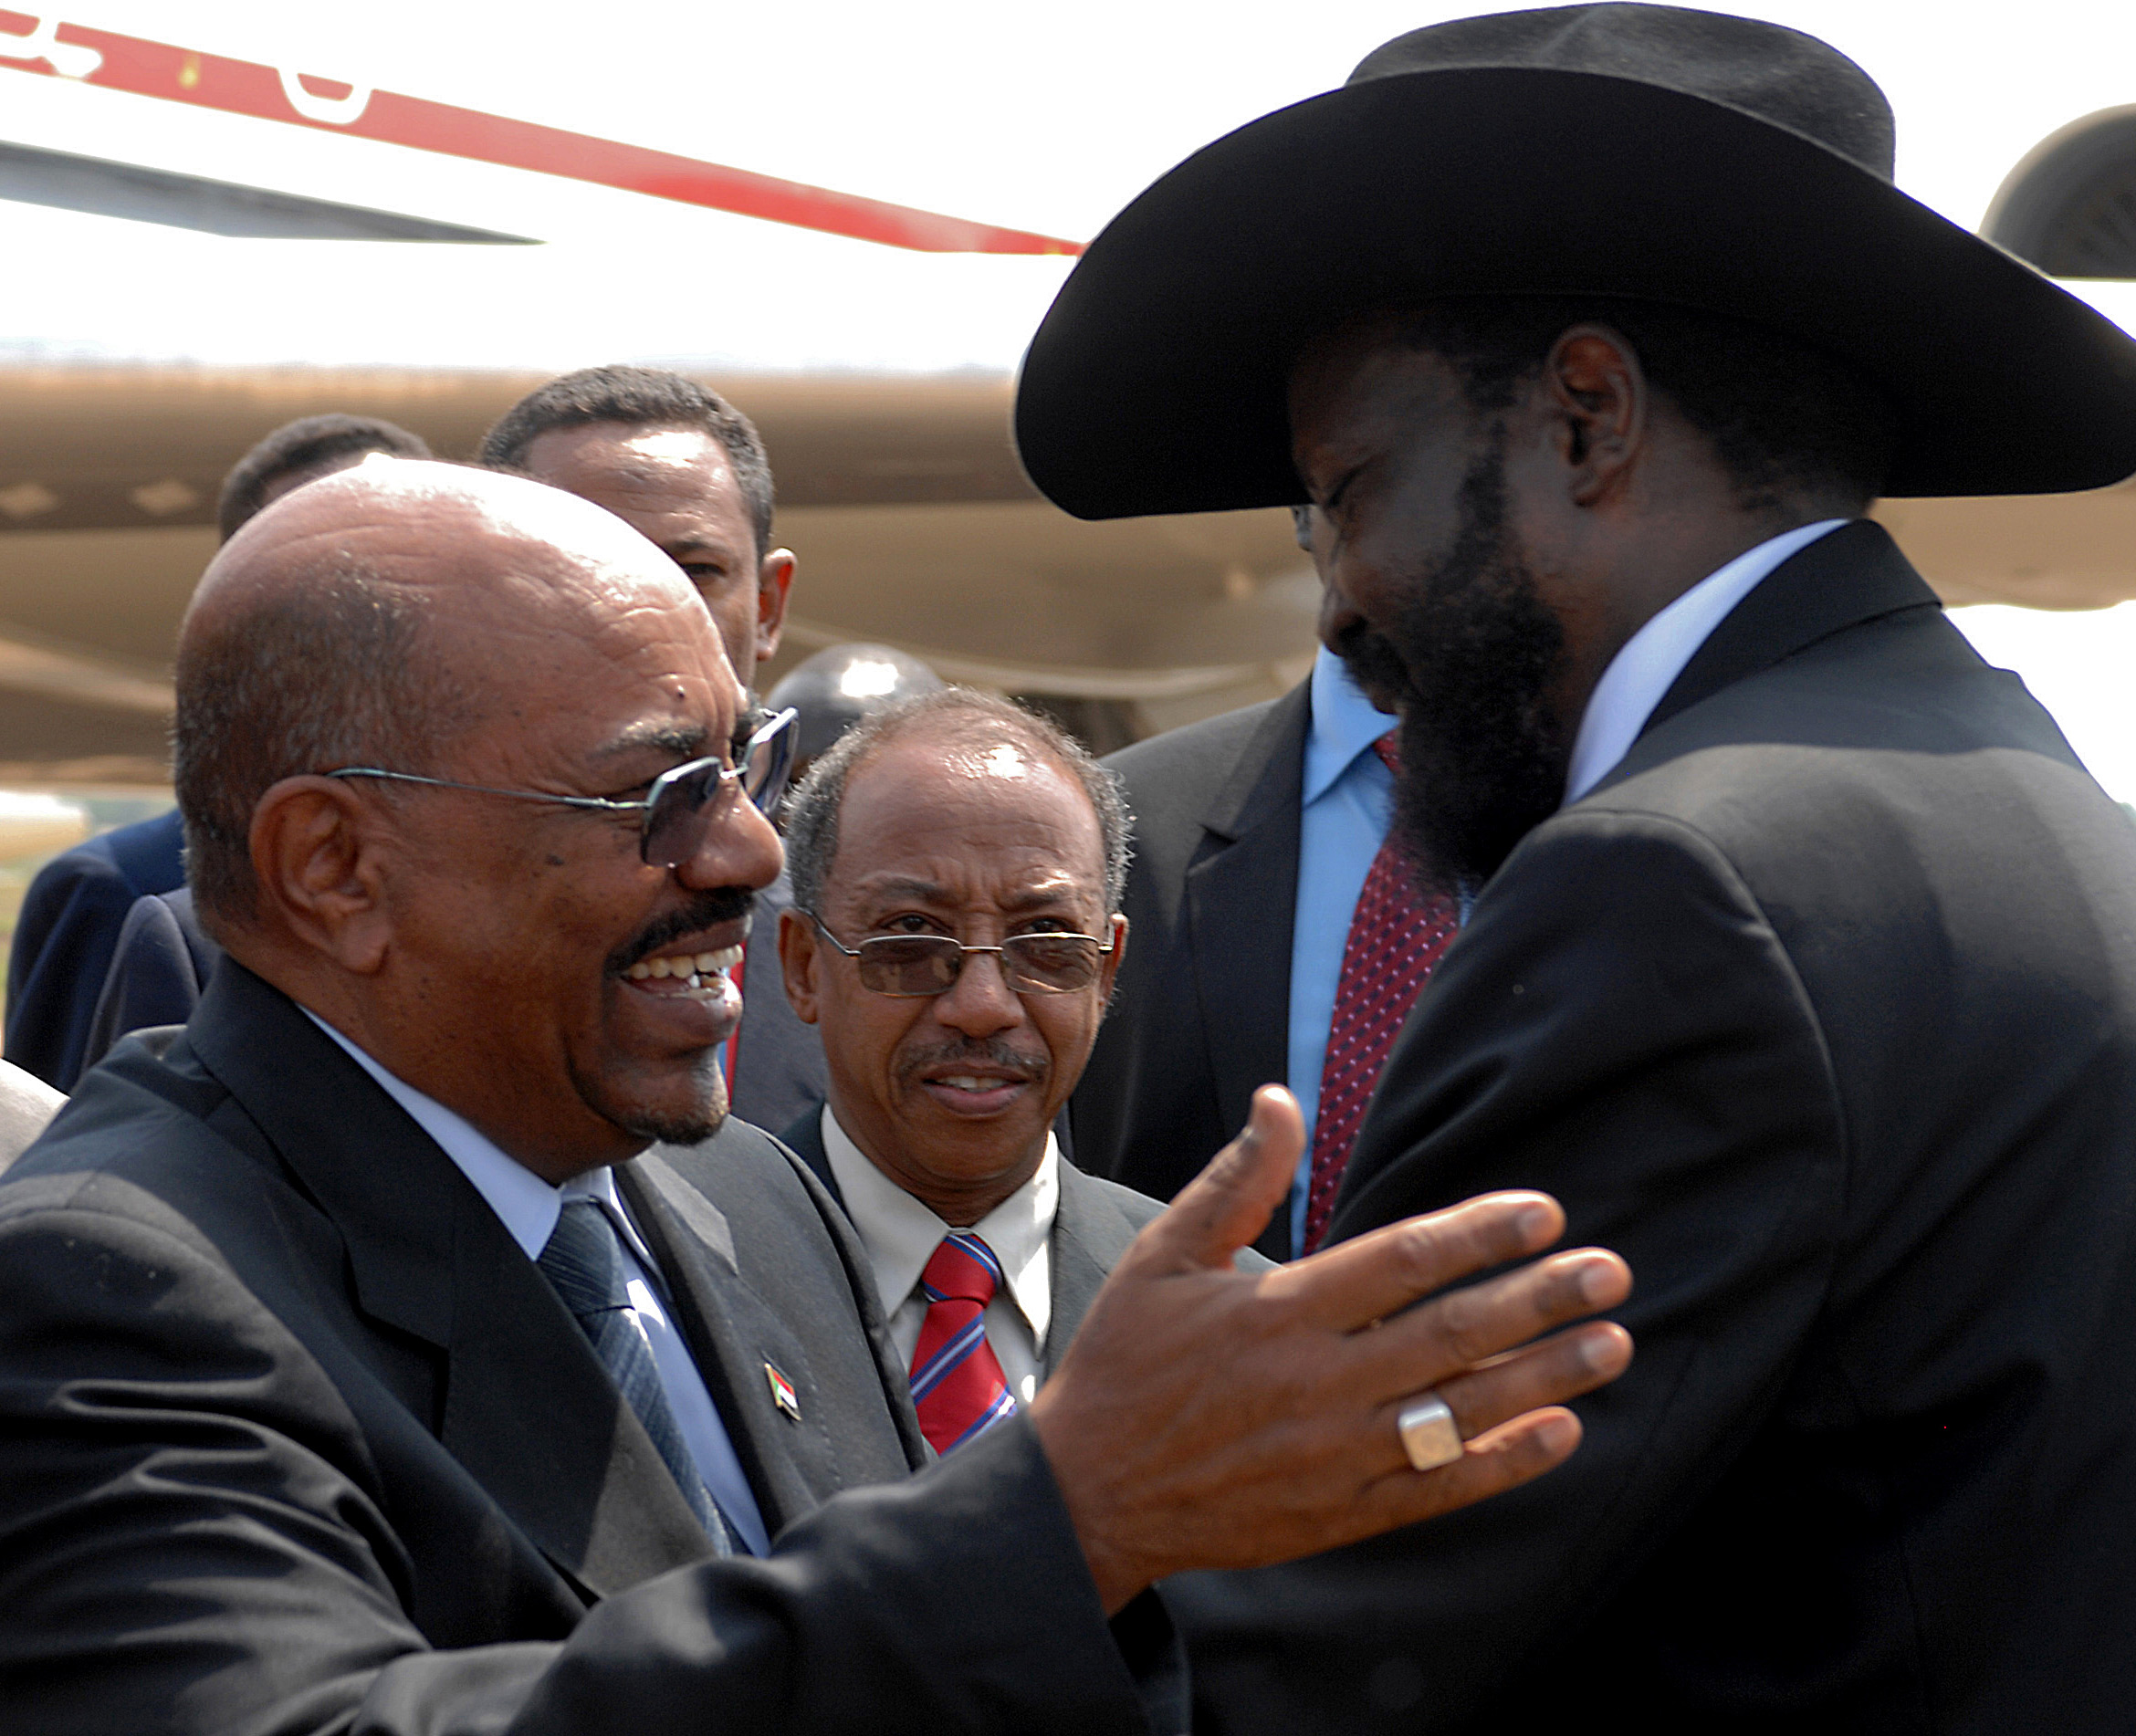 Sudan-South Sudan Field Dispatch: Good News and Bad News from Negotiations in Addis Ababa